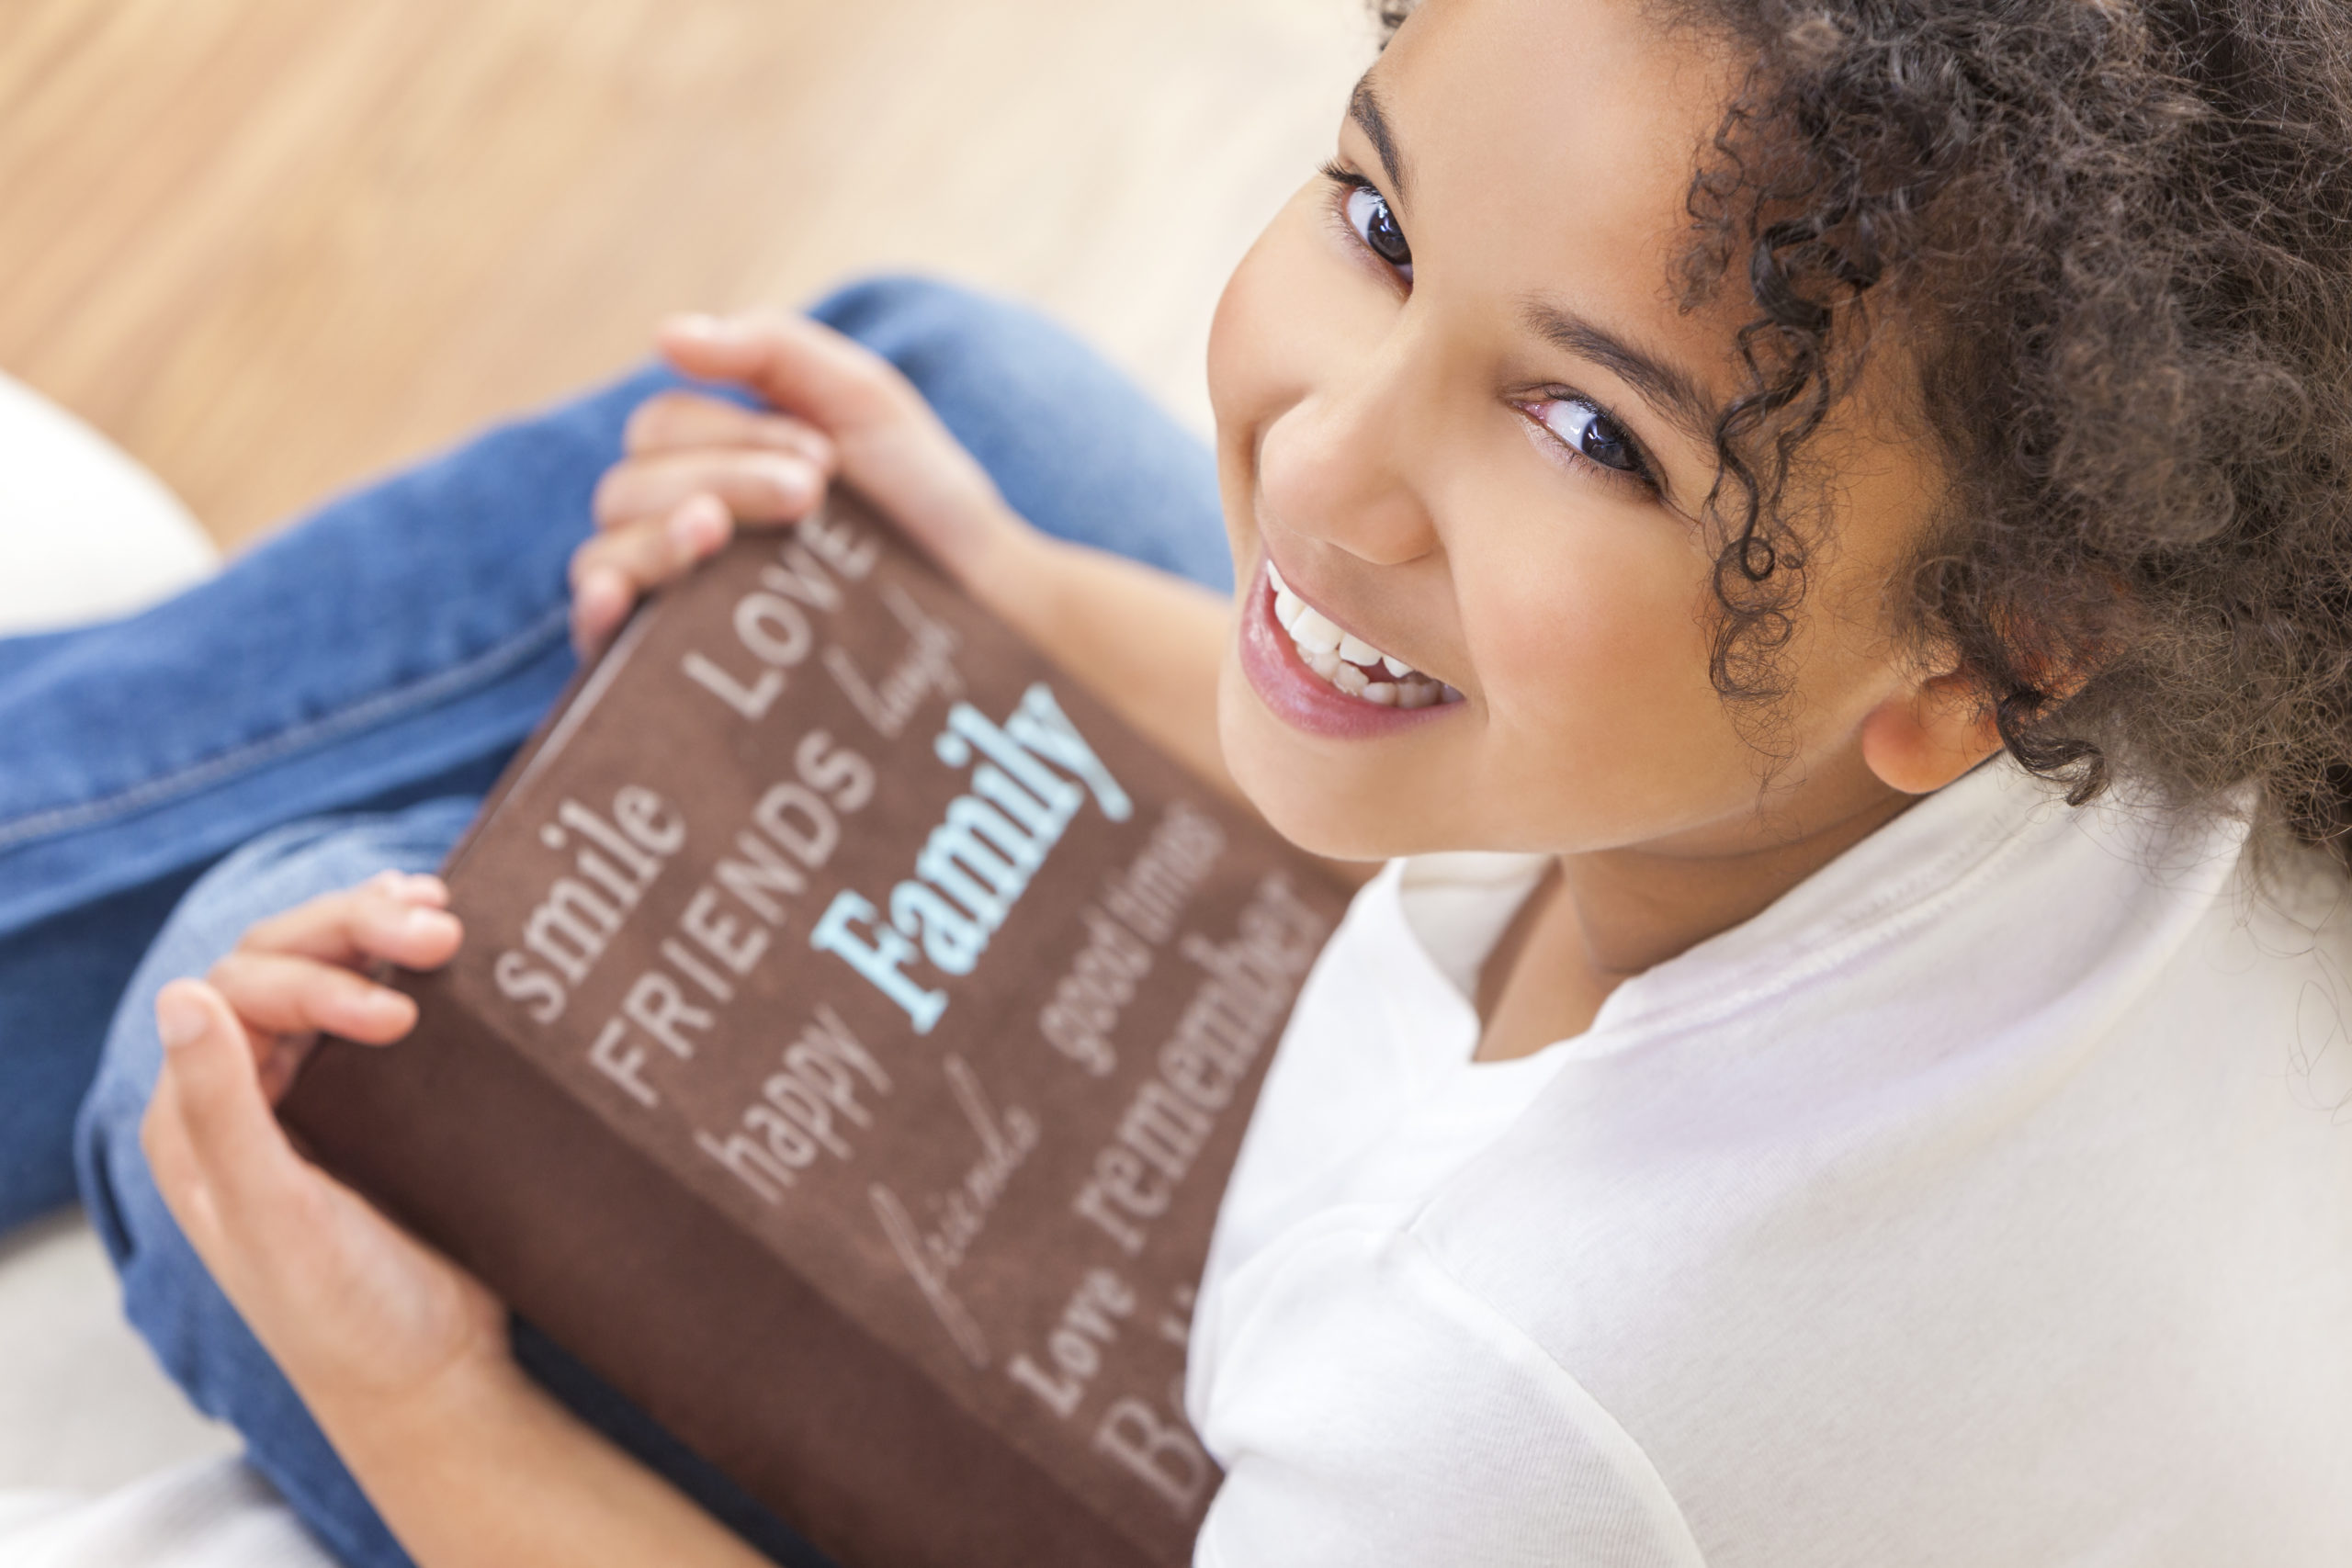 Black American Parenting During the COVID-19 Crisis